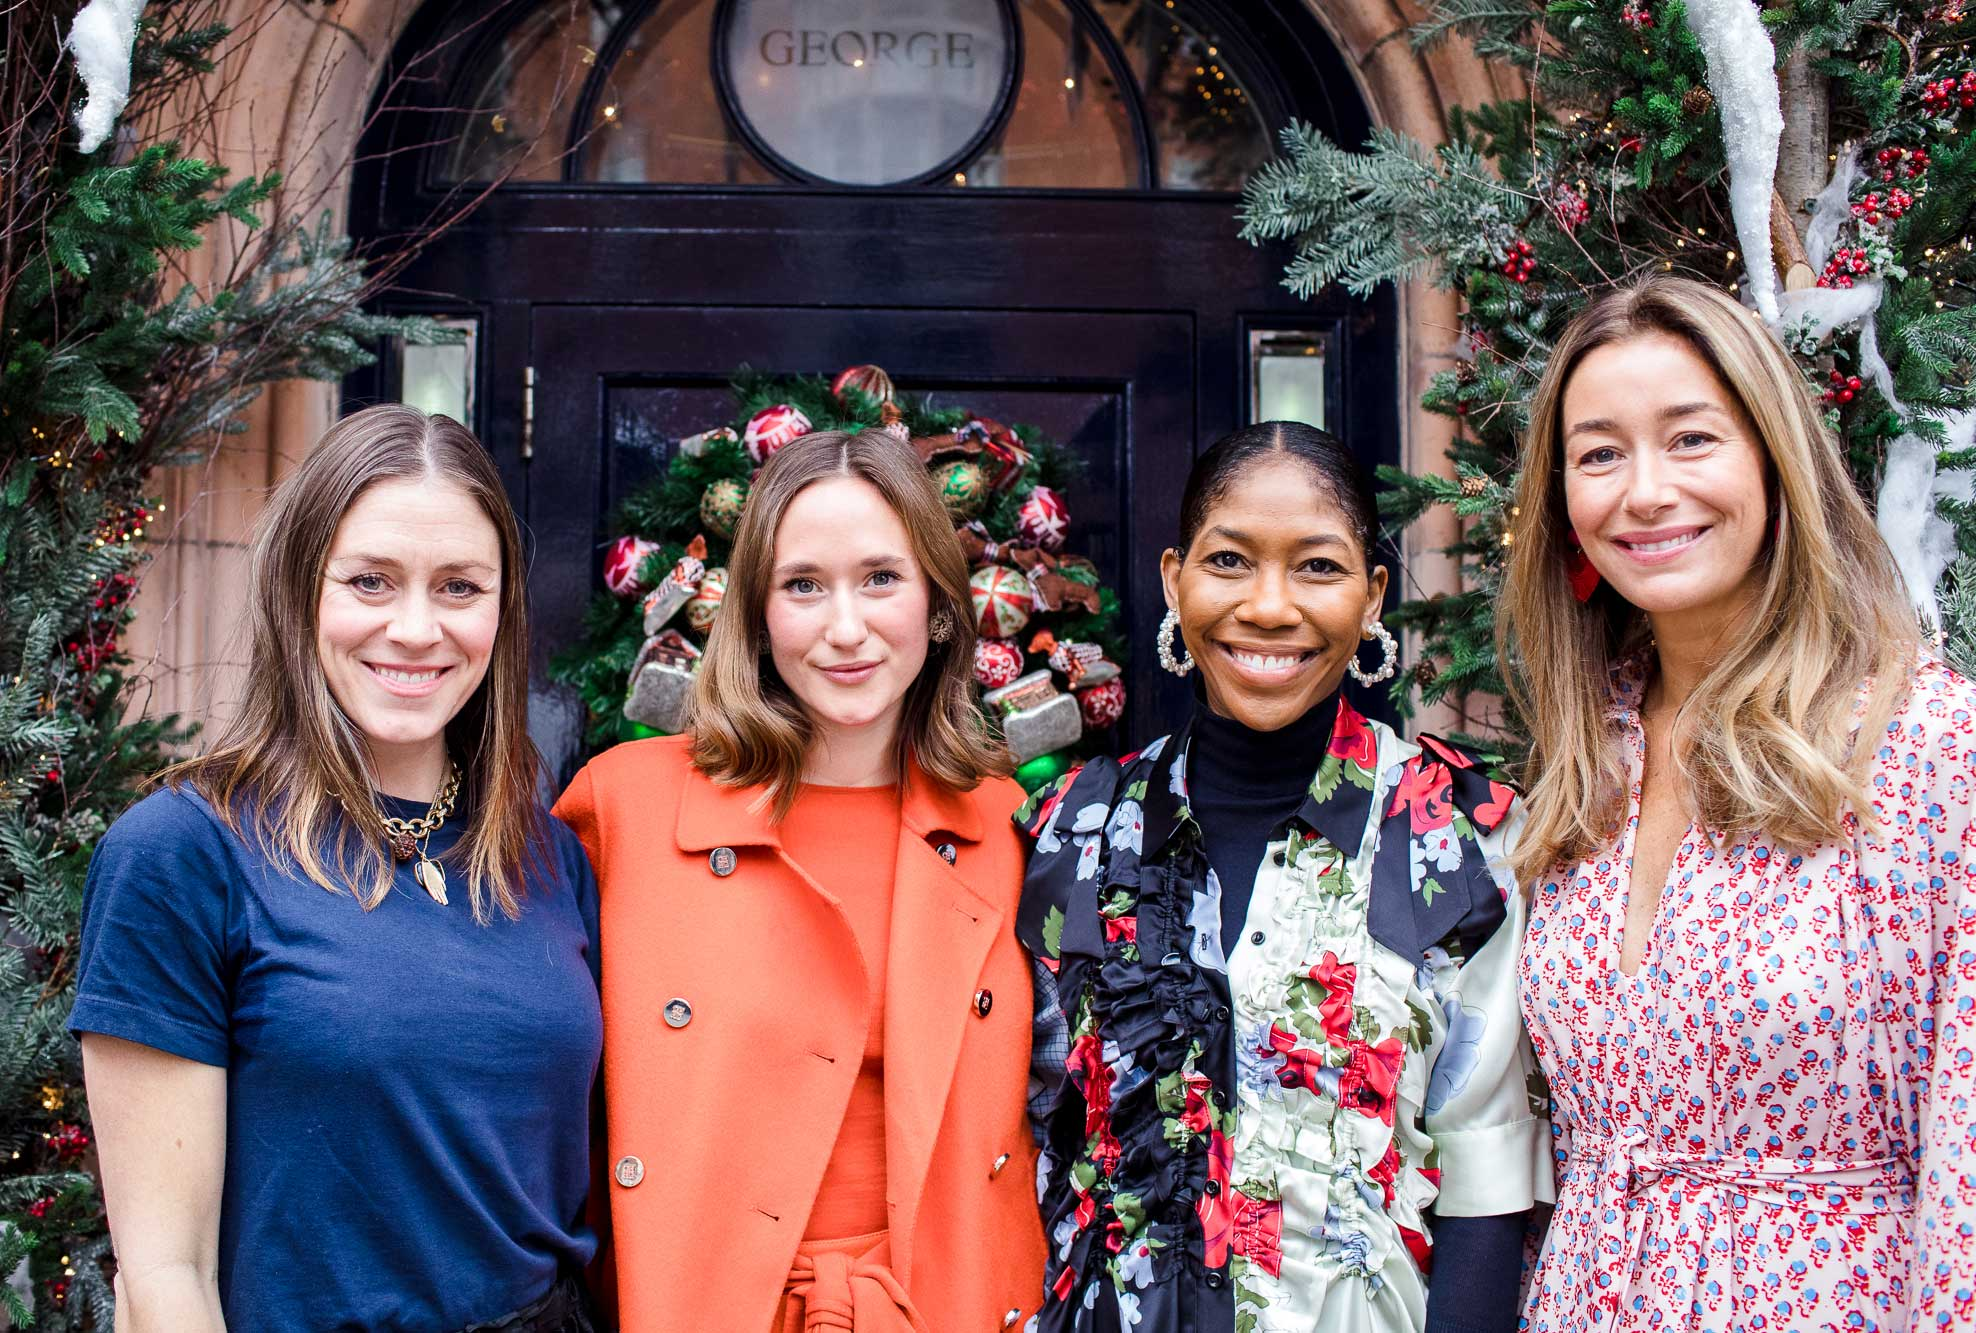 Our Latest GRACE Talks Event at George in London inspired Community & Connection